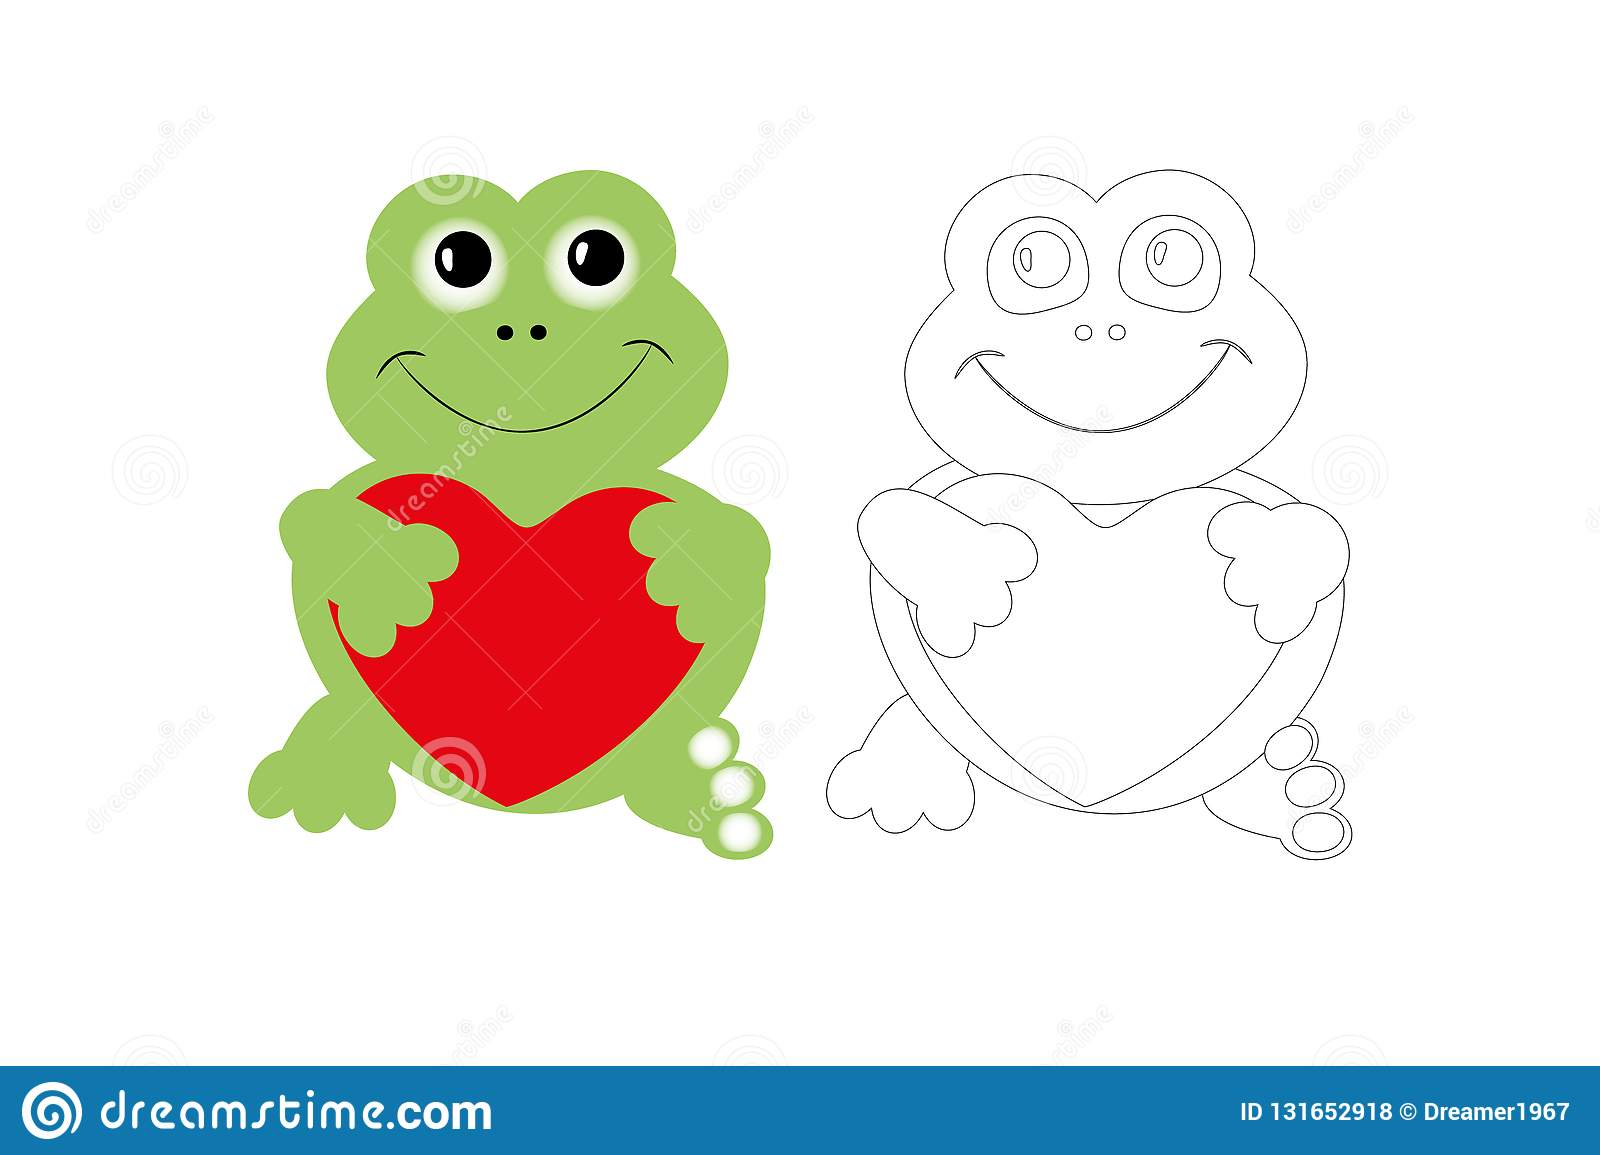 Coloring Page Of Cute Frog With Colorful Sample Printable